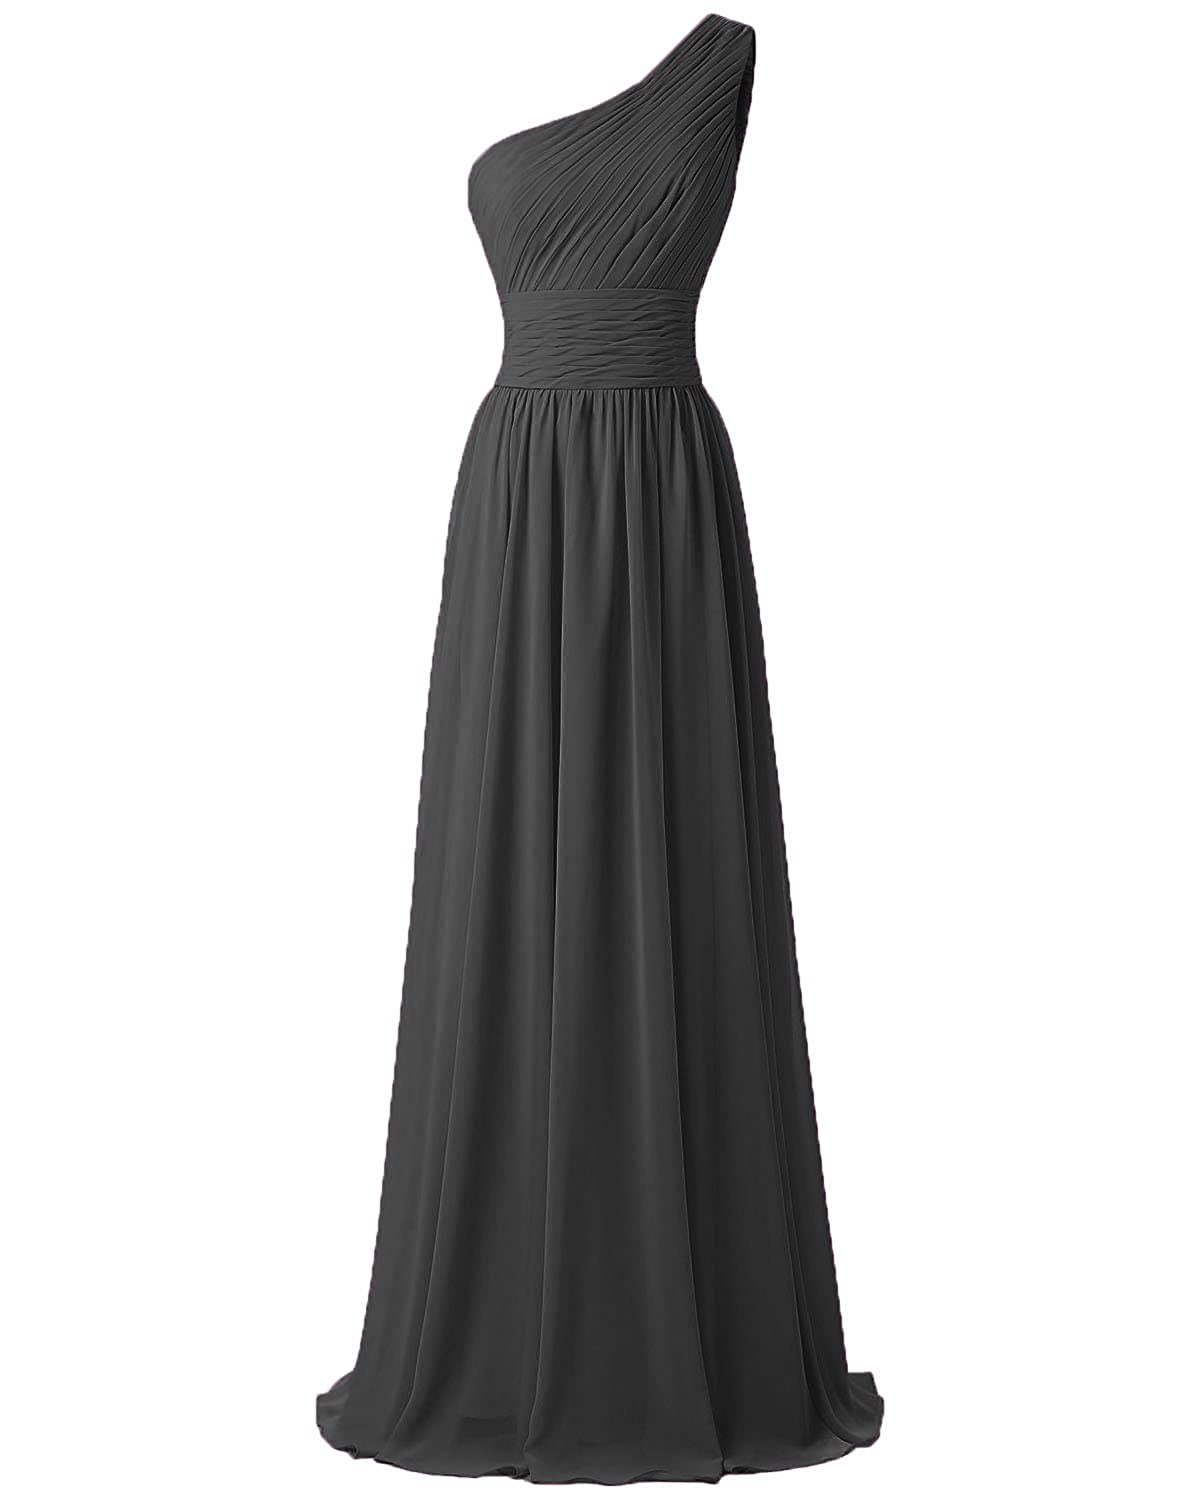 d6ef7932852 FTSOP Women s One Shoulder Bridesmaid Dresses Long Chiffon Pleated Evening  Dress at Amazon Women s Clothing store